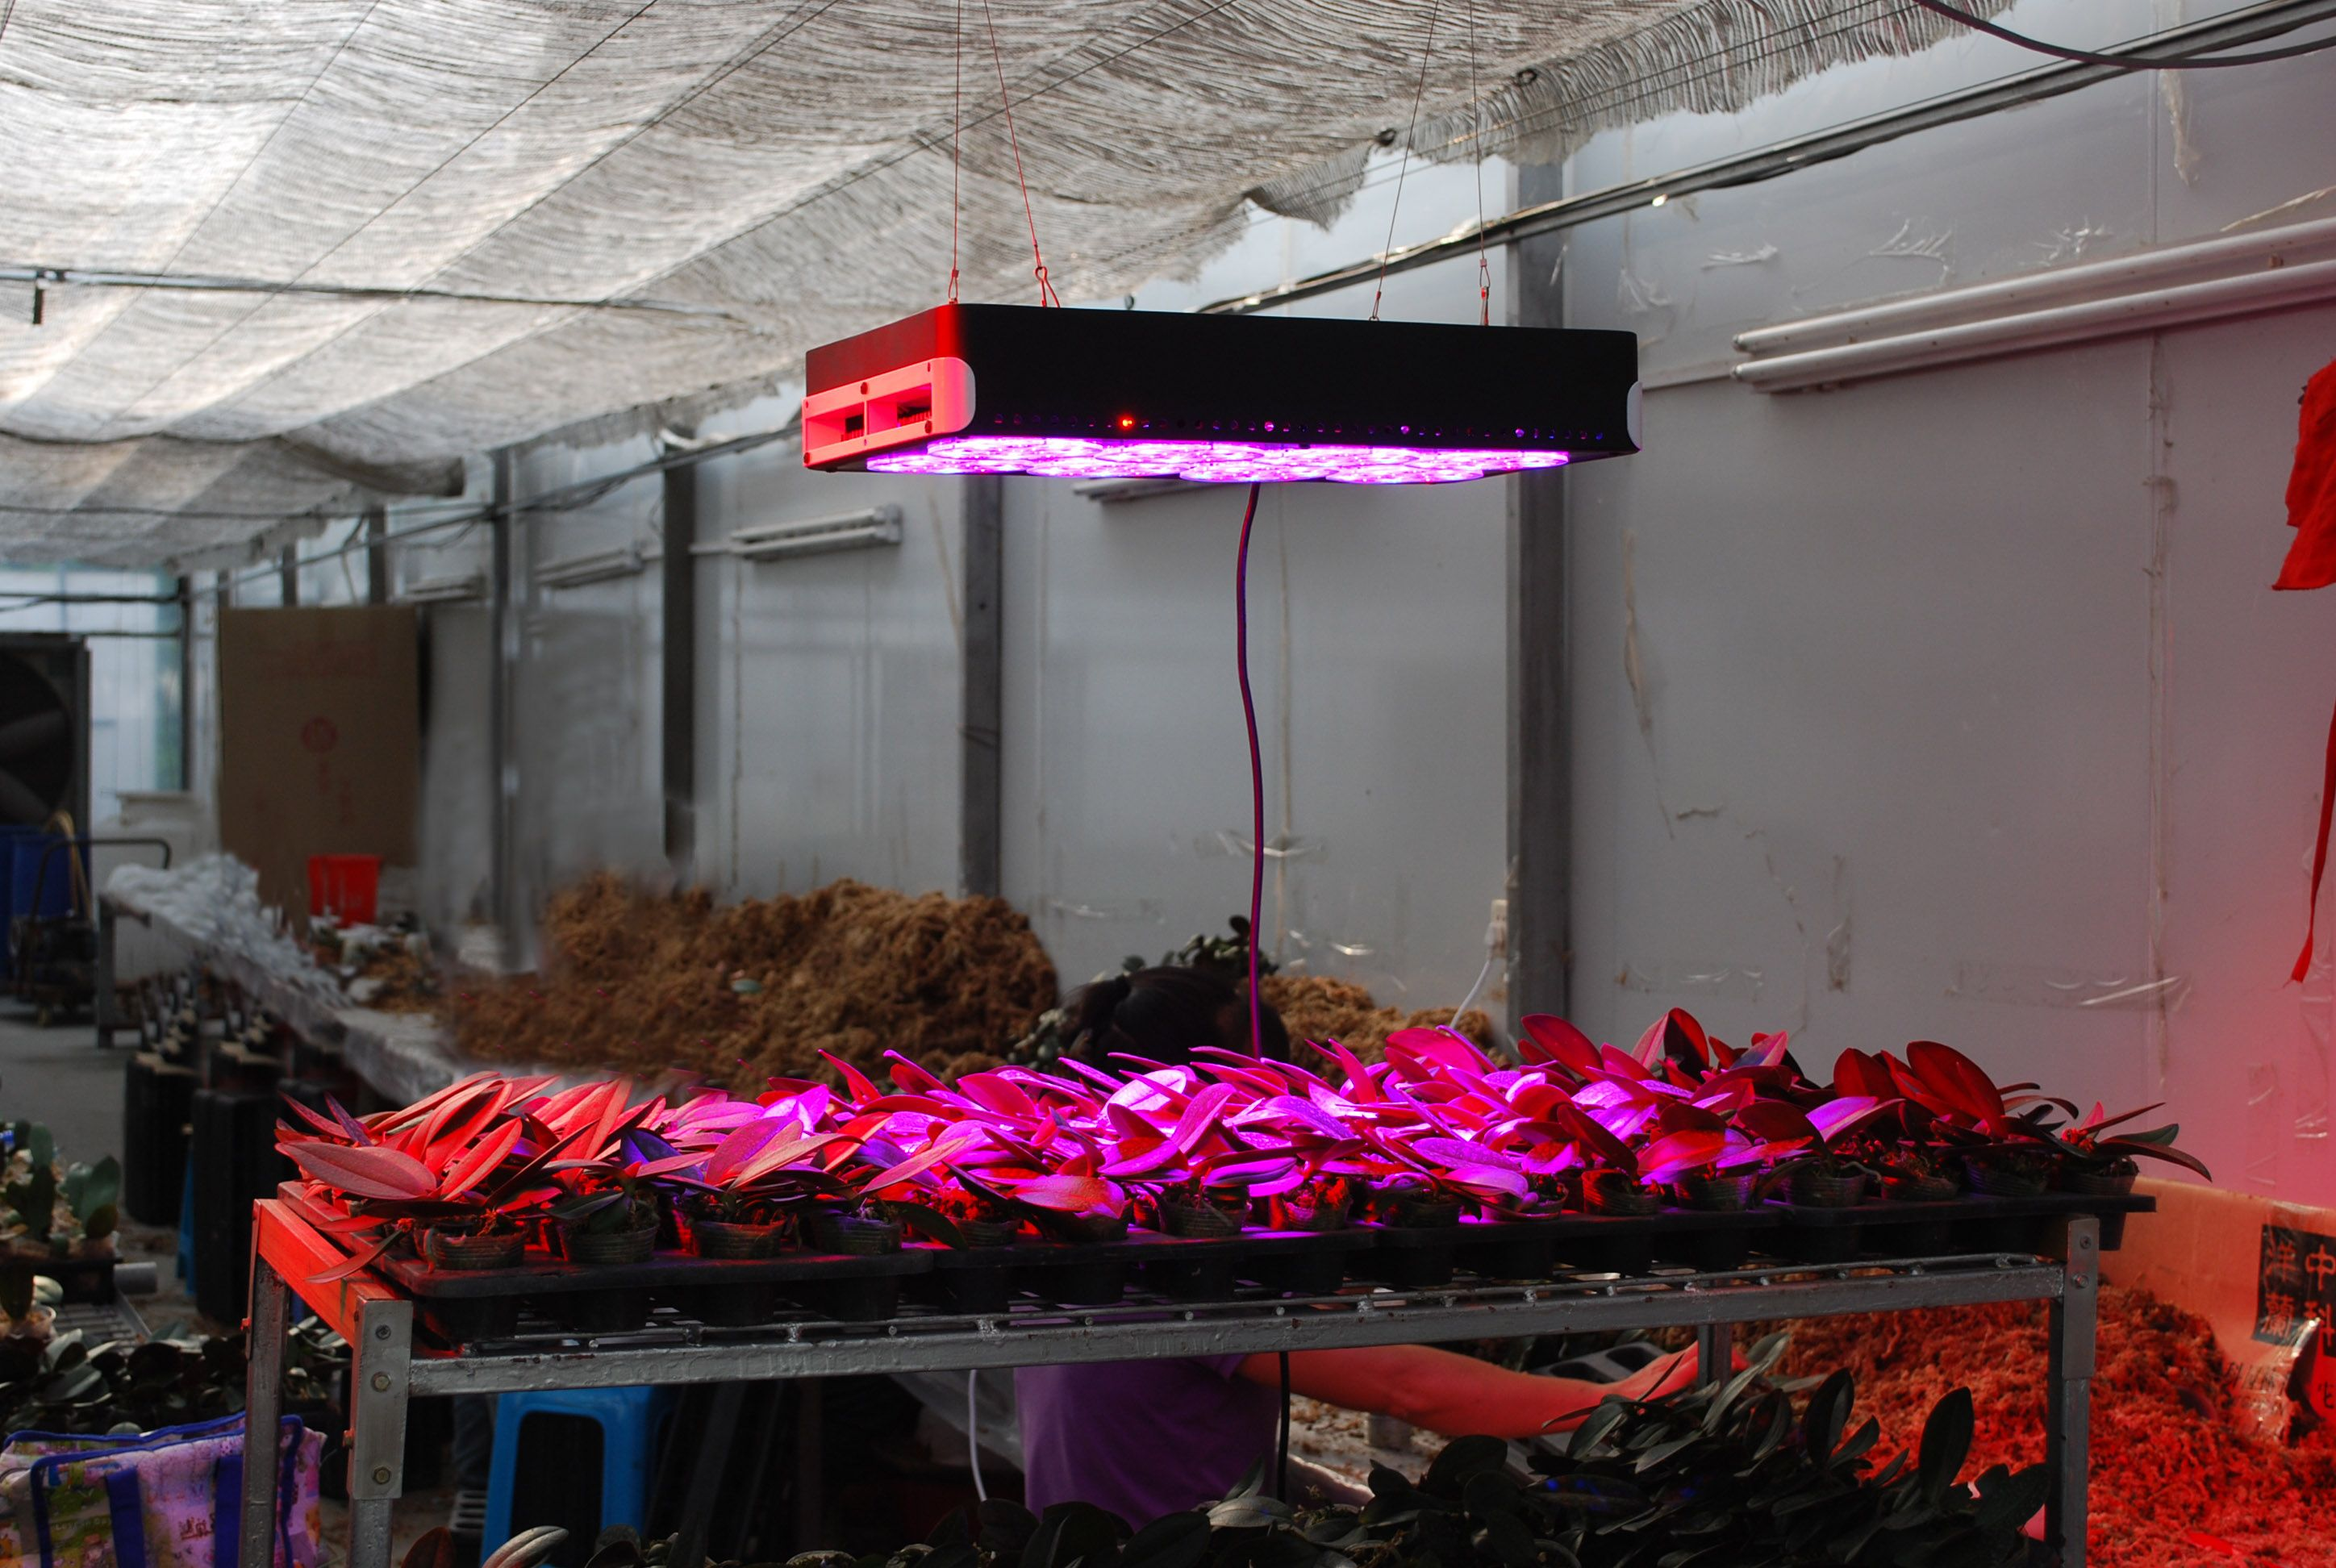 Apollo 8 Hydeoponic System Full Spectrum Cob Grow Light David Sehon Net Plant Lighting Indoor Grow Lights Grow Lights